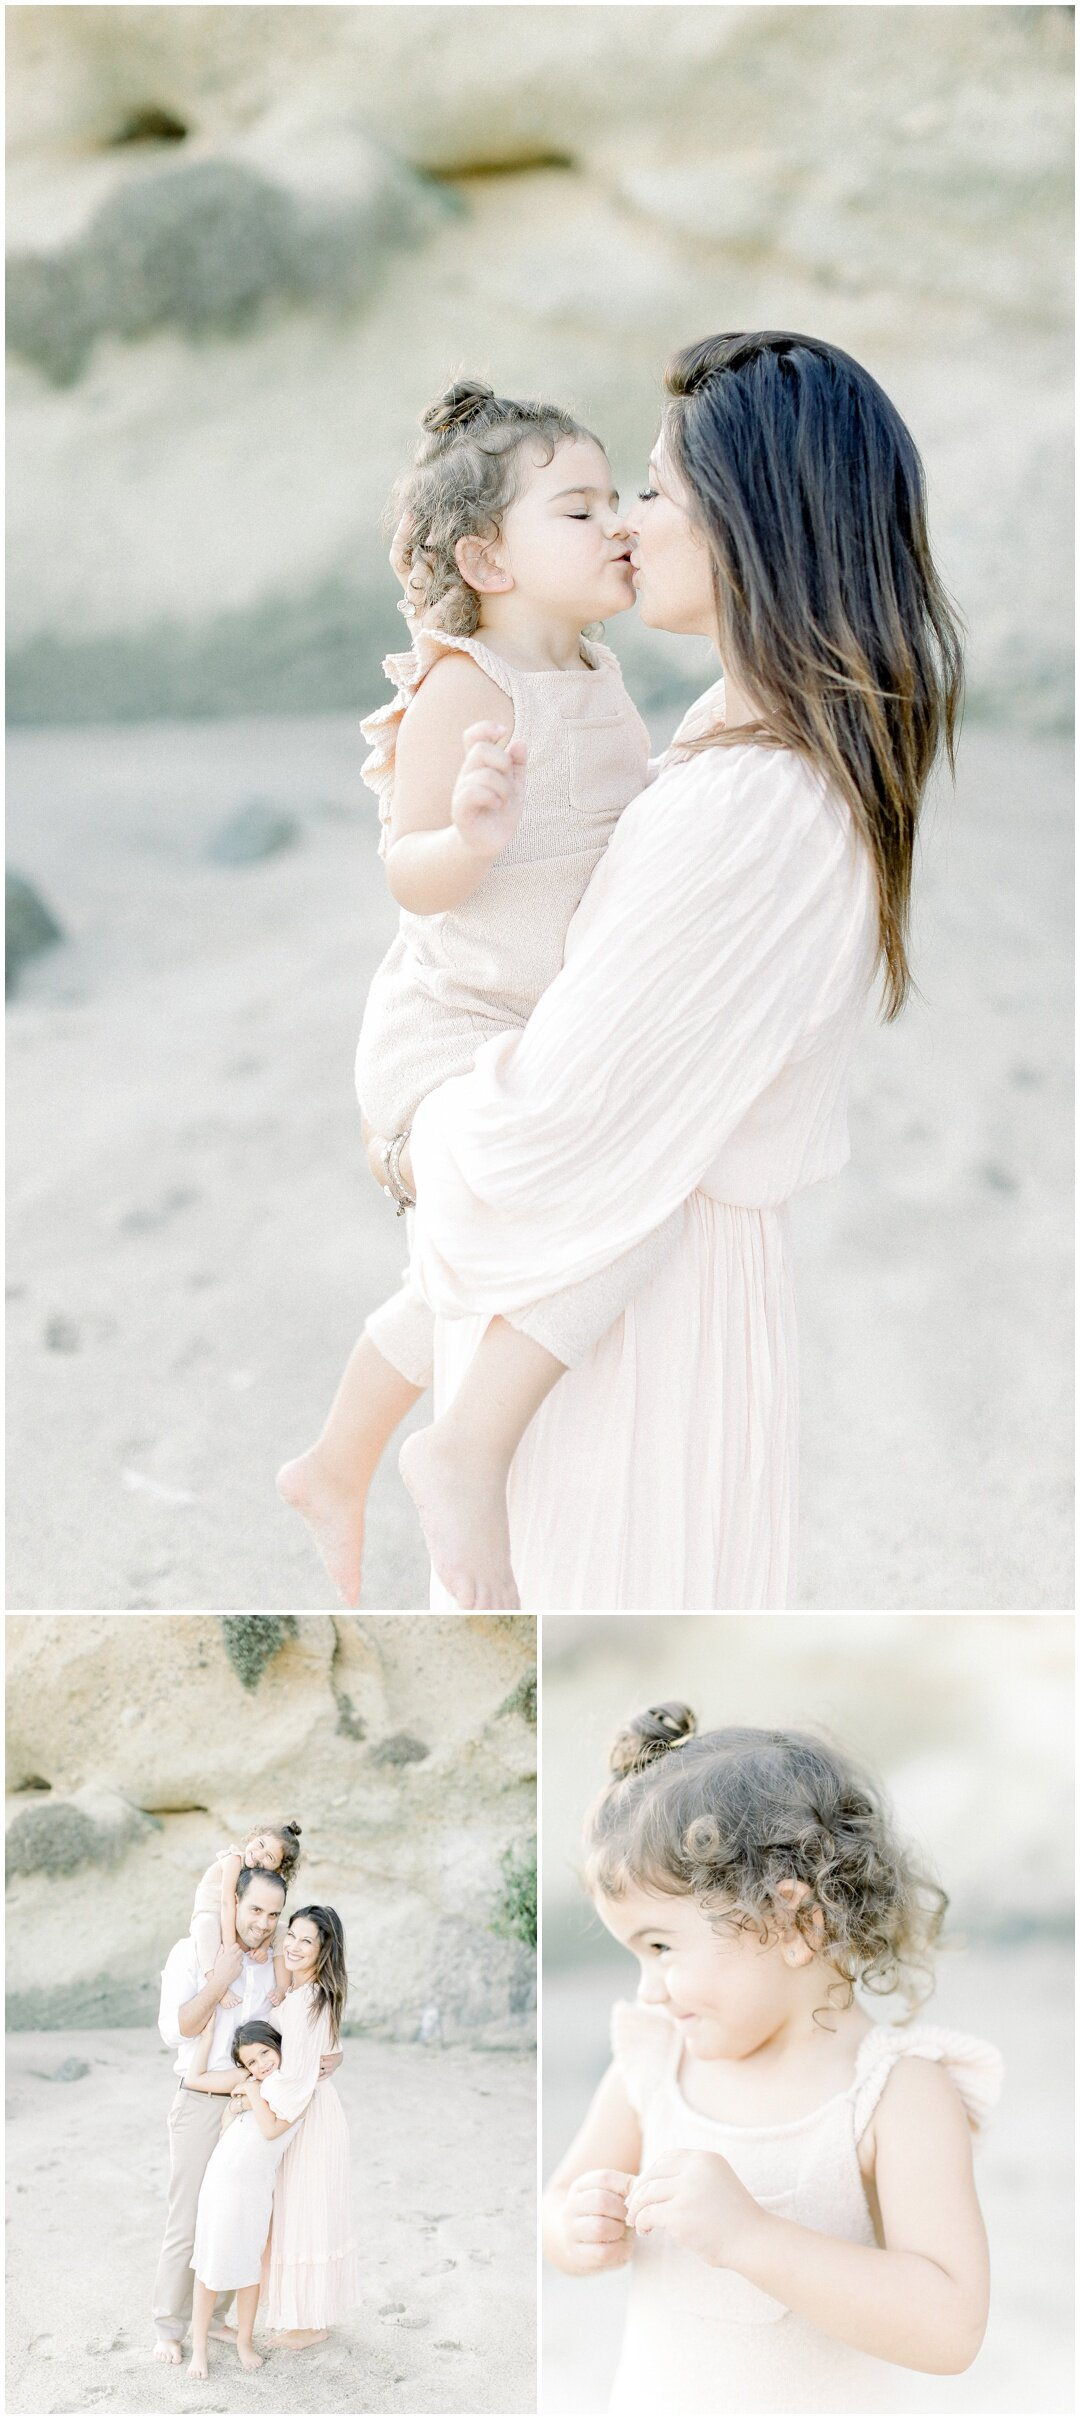 Newport+Beach+Newborn+Maternity+Photographer+Orange+County+Family+Photographer+Cori+Kleckner+Photography+Natalie+Hay+Loretz+Robert+Hay+The+Hay+Family_4448.jpg